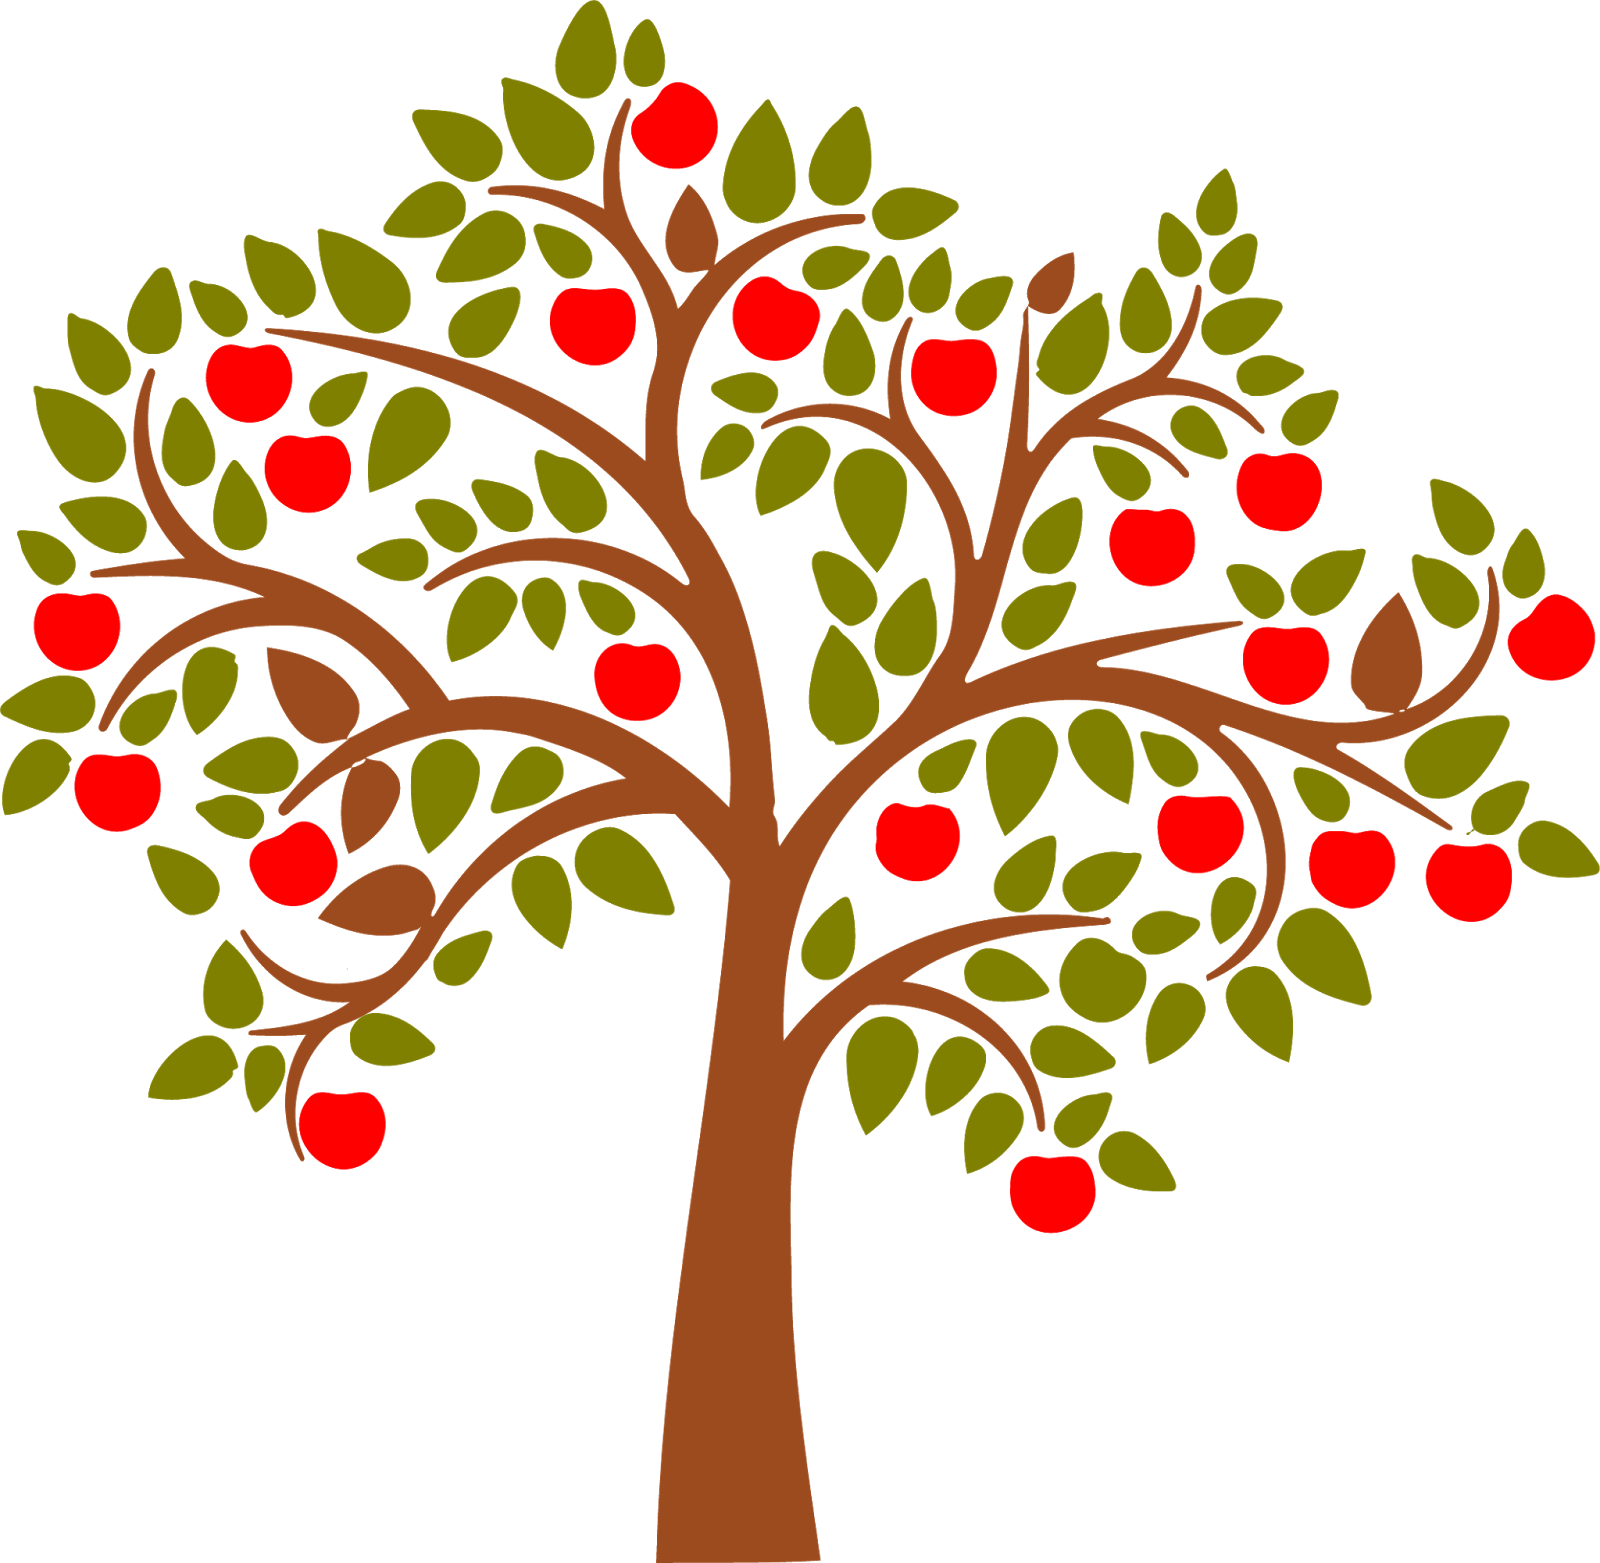 Fruit tree with roots clipart picture transparent drawings of pear trees - Google Search | Laurie tattoo | Pinterest ... picture transparent